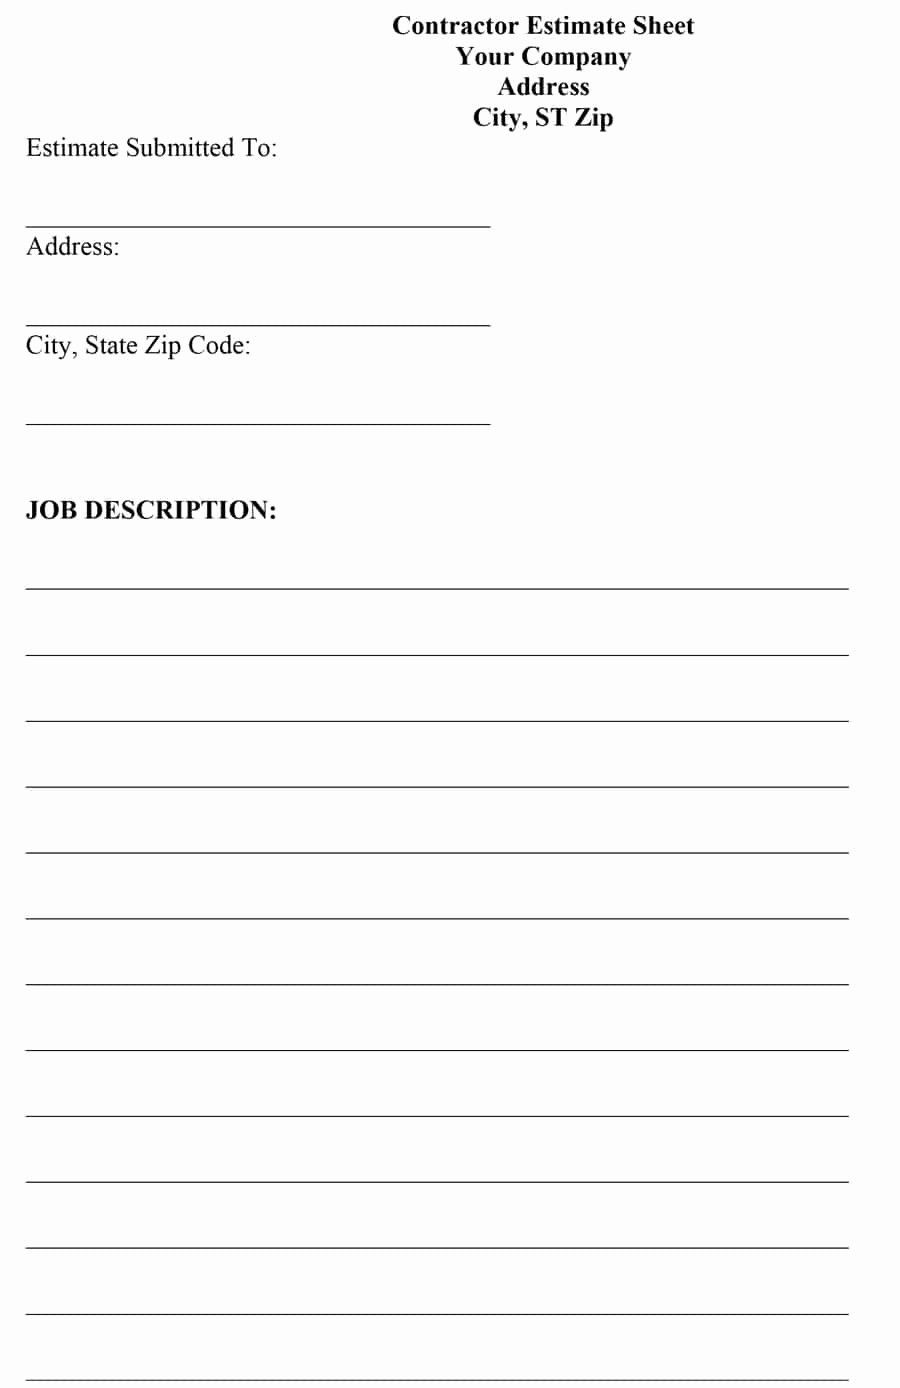 Construction Contract Template Free Download Fresh 44 Free Estimate Template Forms Construction Re Estimate Template Free Brochure Template Proposal Templates